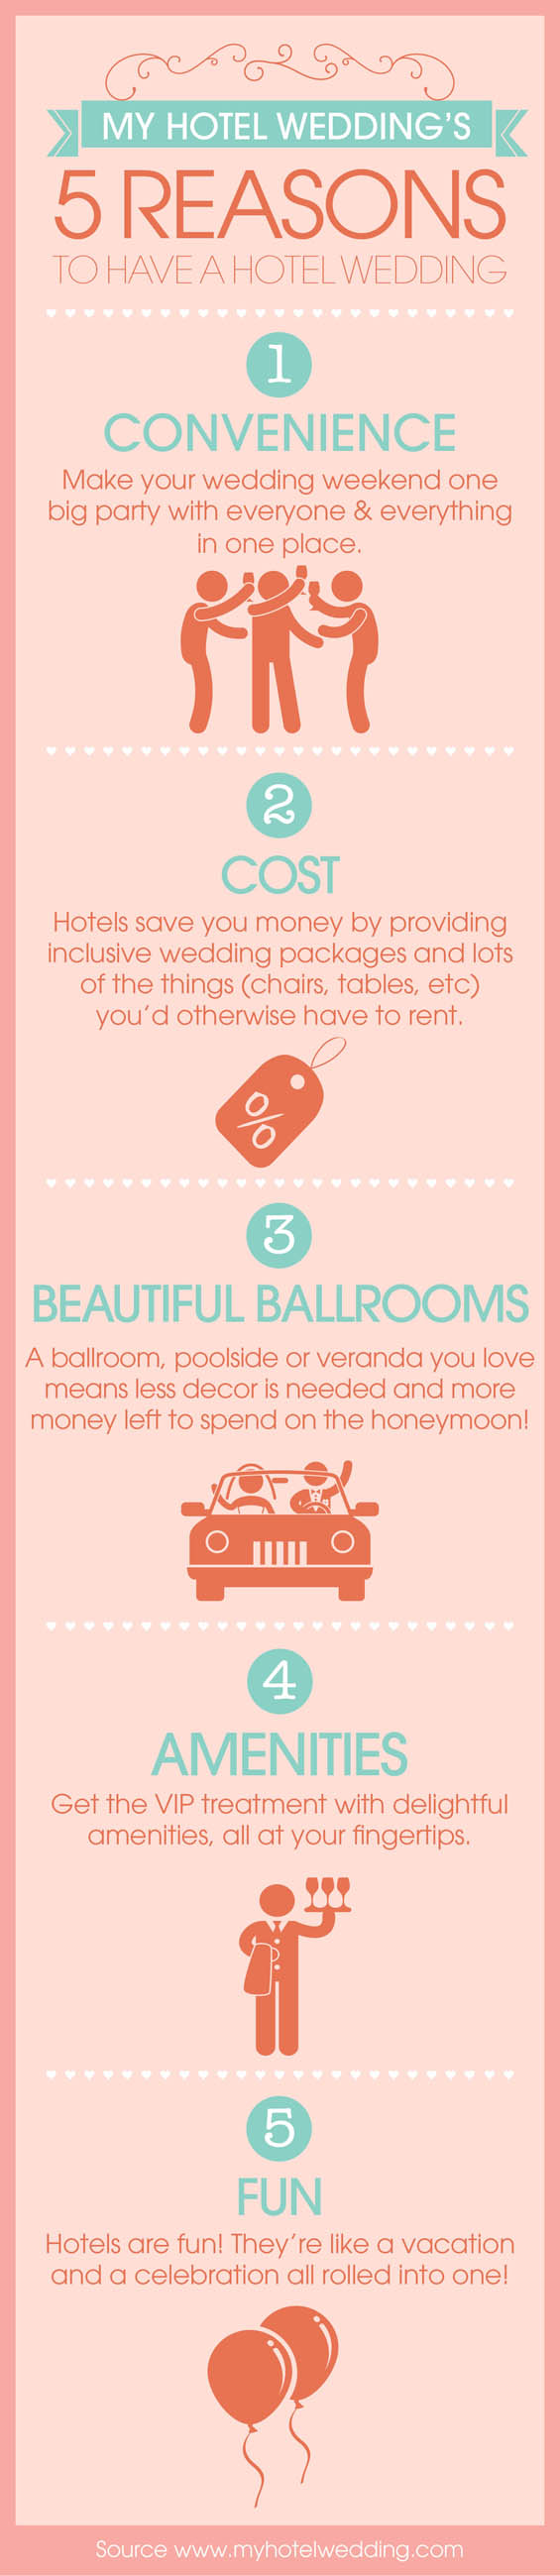 My Hotel Wedding - Why A Hotel Wedding Infographic